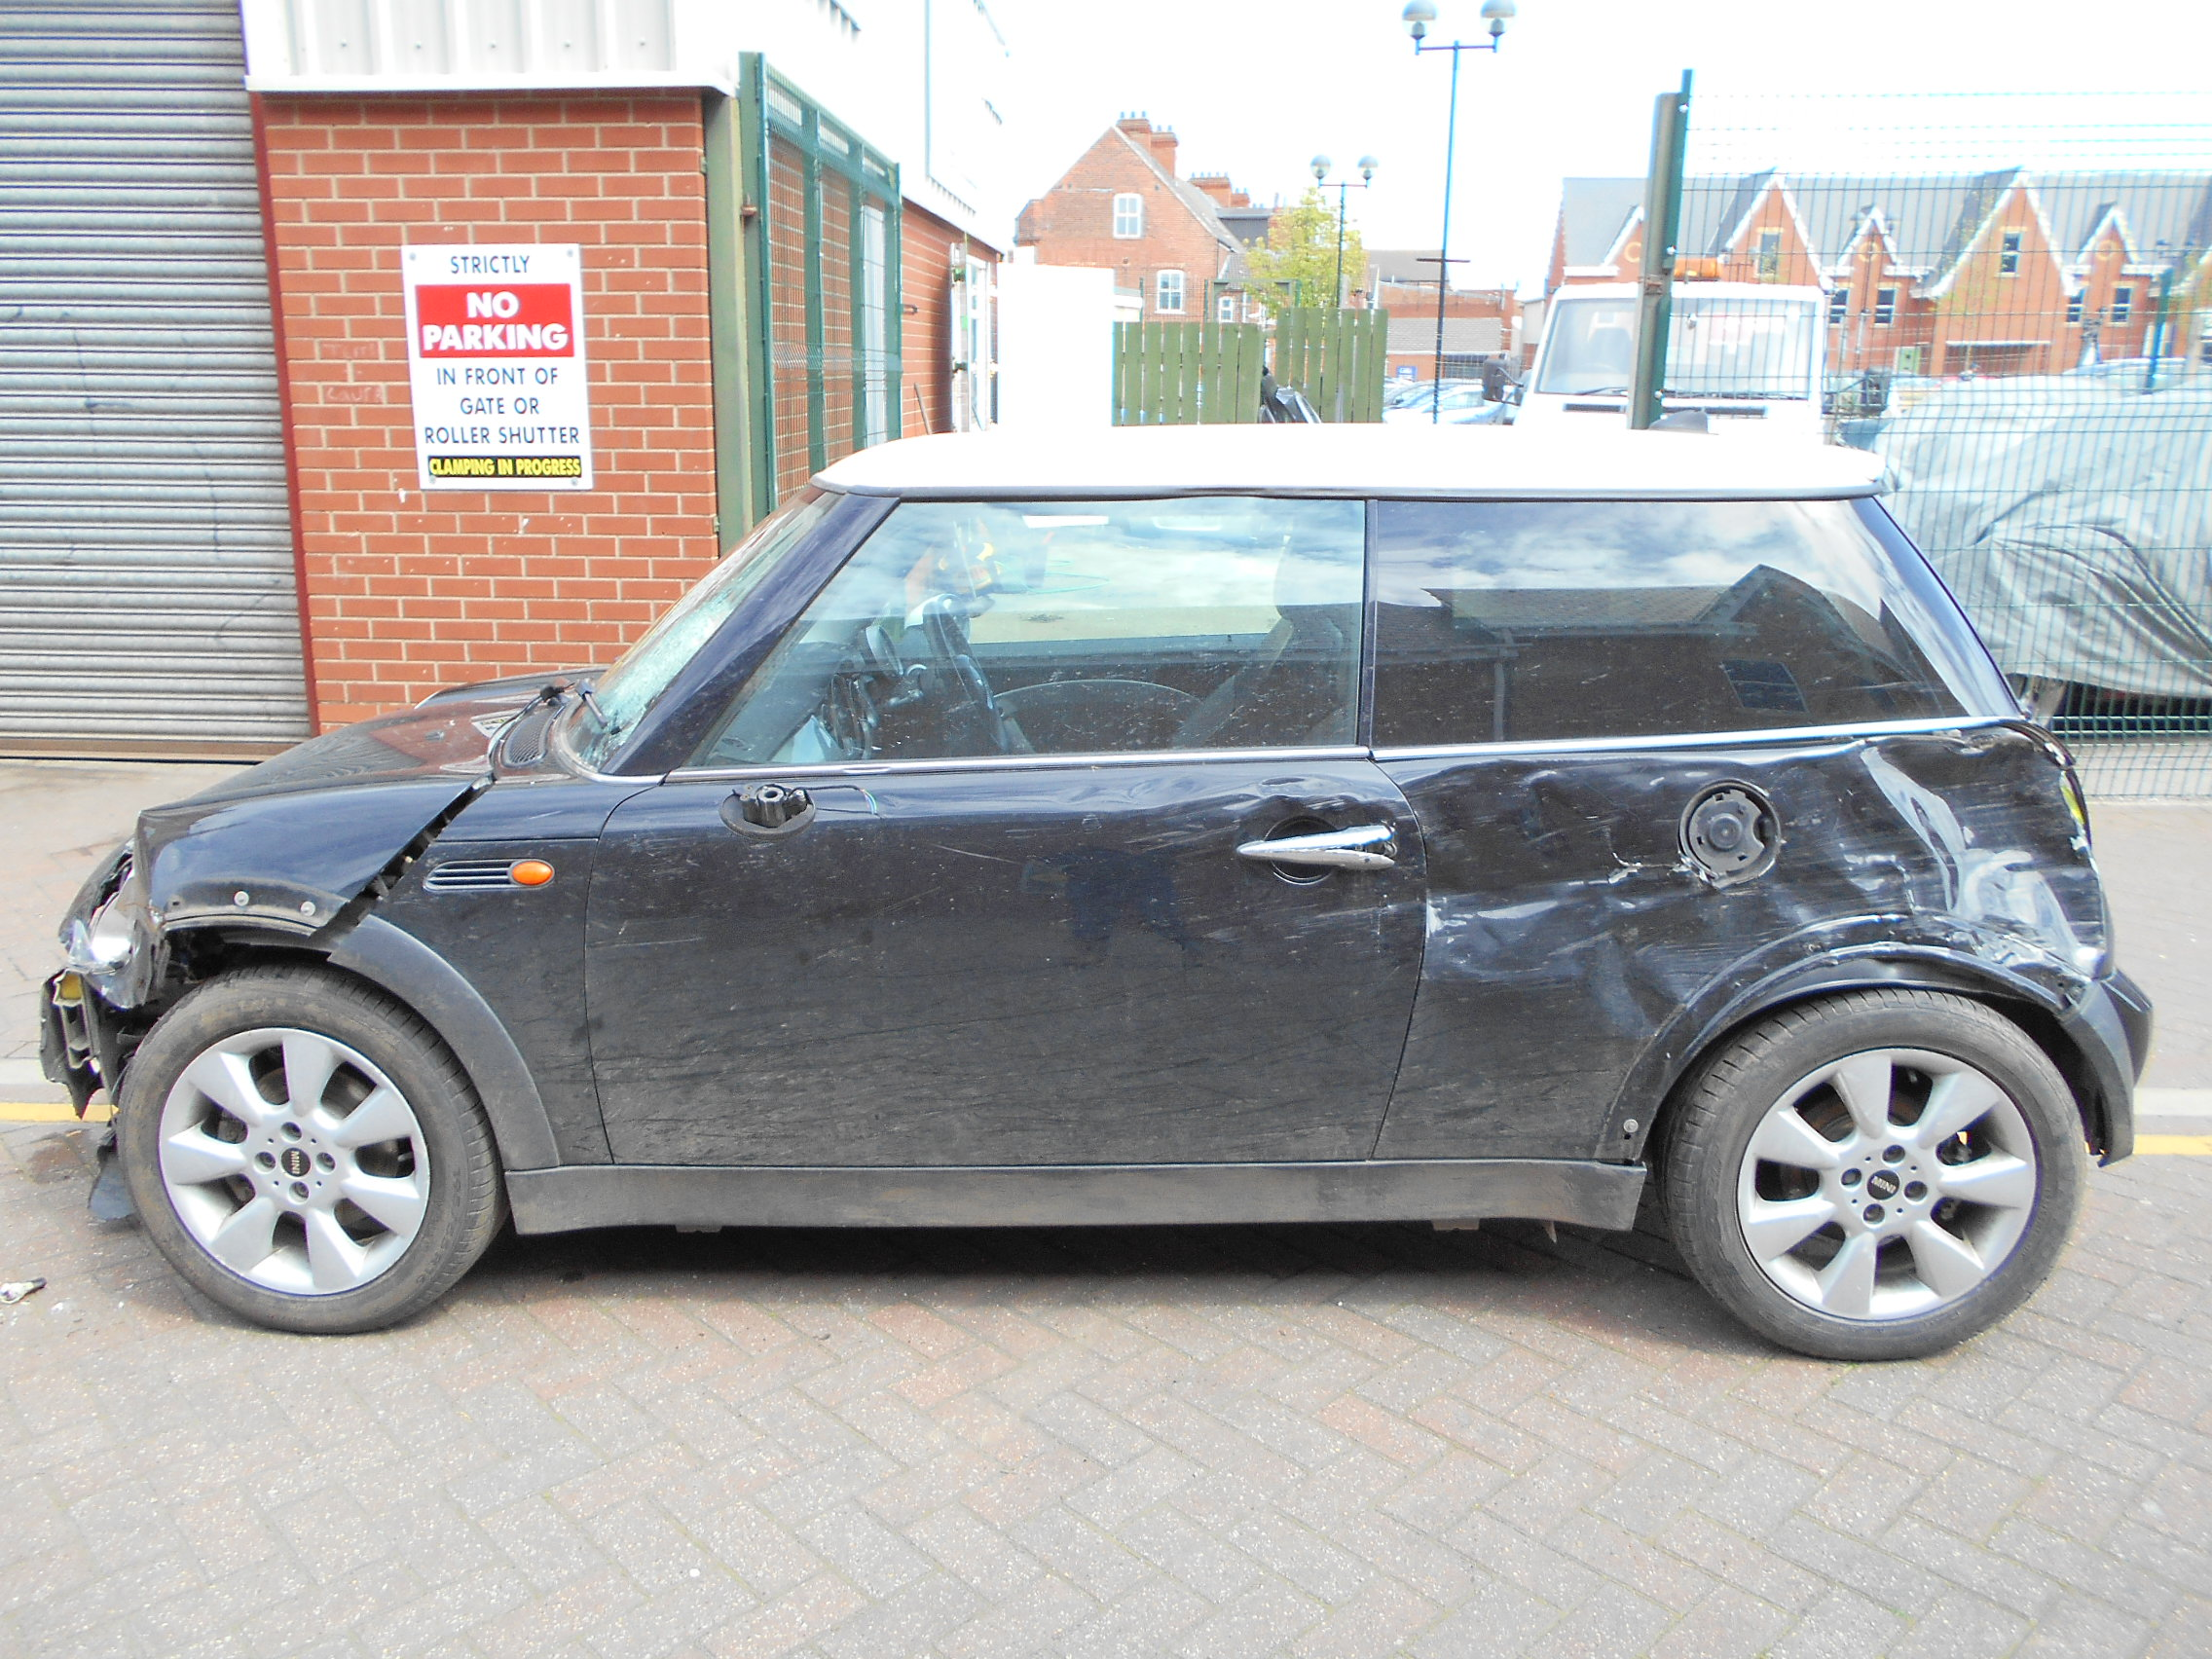 04 Black 1.6 BMW Mini Cooper - 2